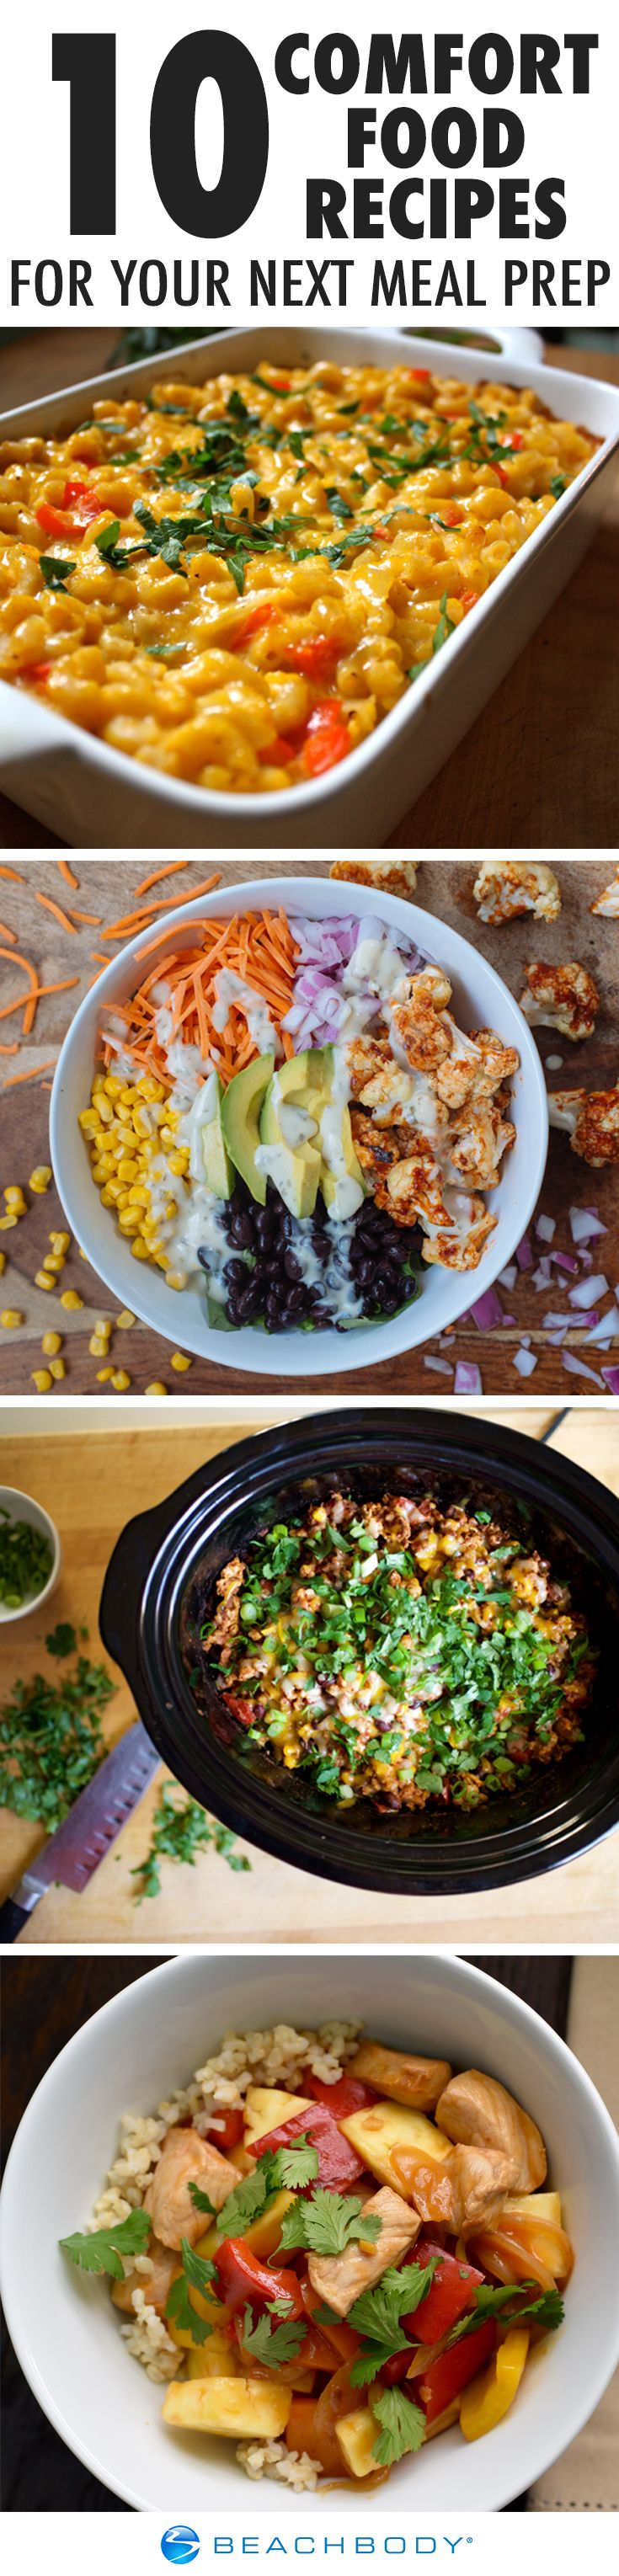 White apron menu oshawa - 10 Comfort Food Recipes To Try In Your Next Meal Prep